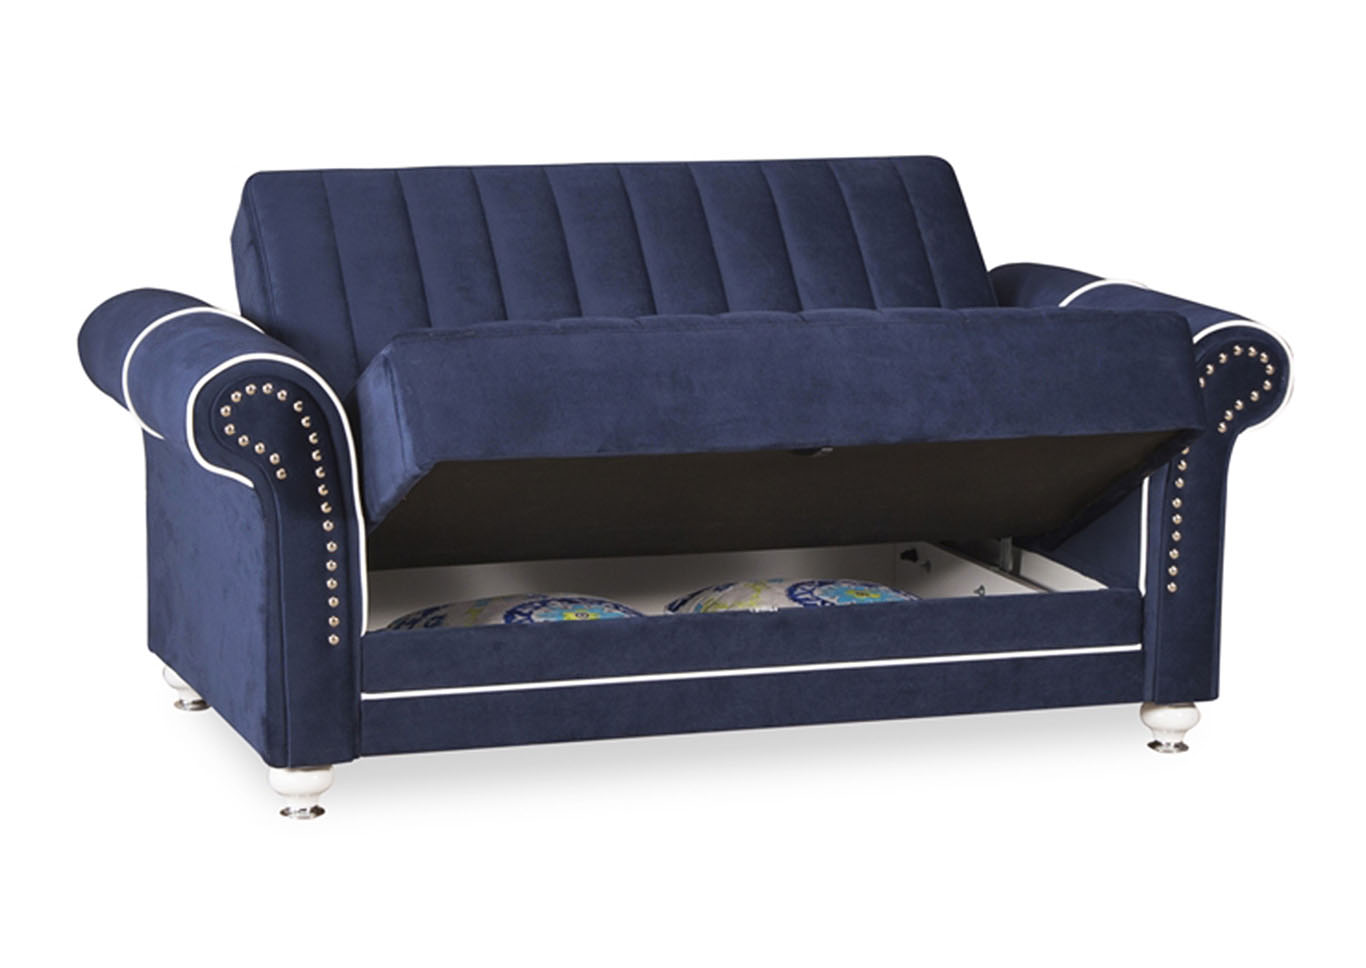 Royal Home Riva Dark Blue Microfiber Love Seat,CasaMode Functional Furniture